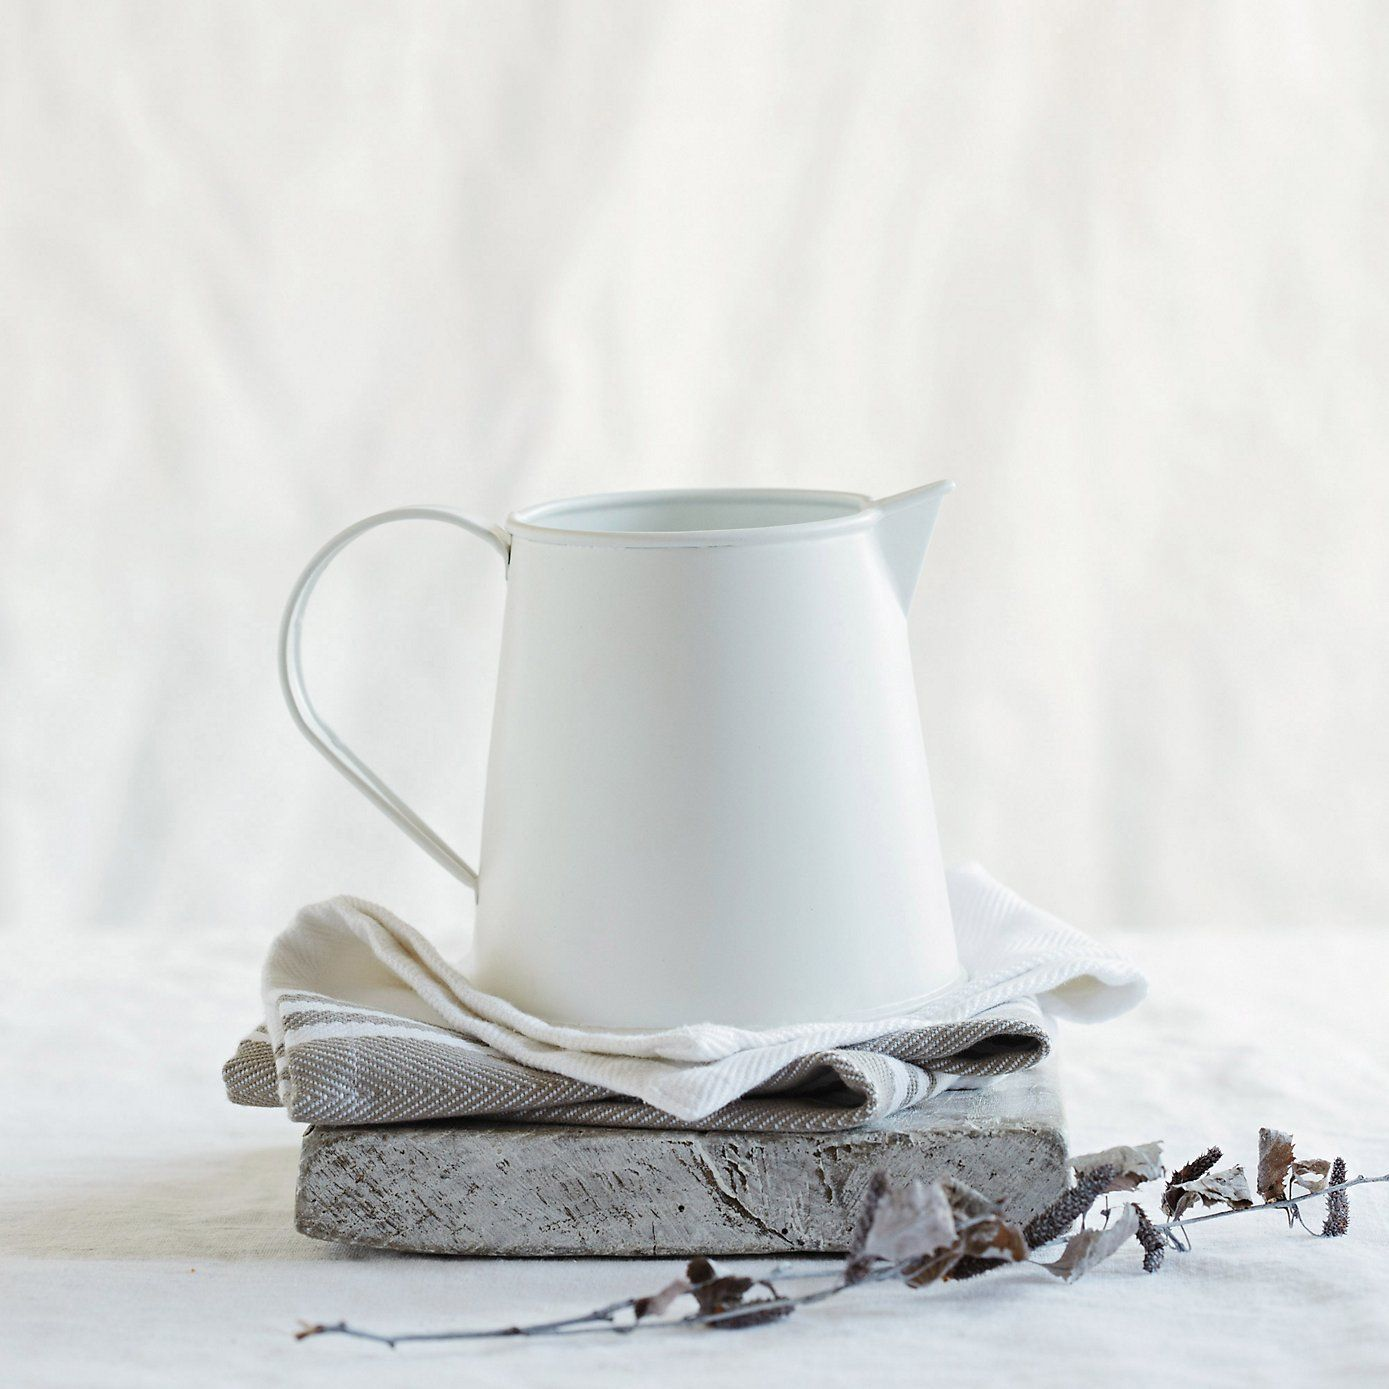 Matte Enamel Jug - Small | The White Company. Shopping from the US? -> http://us.thewhitecompany.com/Home-%26-Bath/Decorative-Accessories/Matte-Enamel-Jug---Small/p/ENHJS?swatch=White